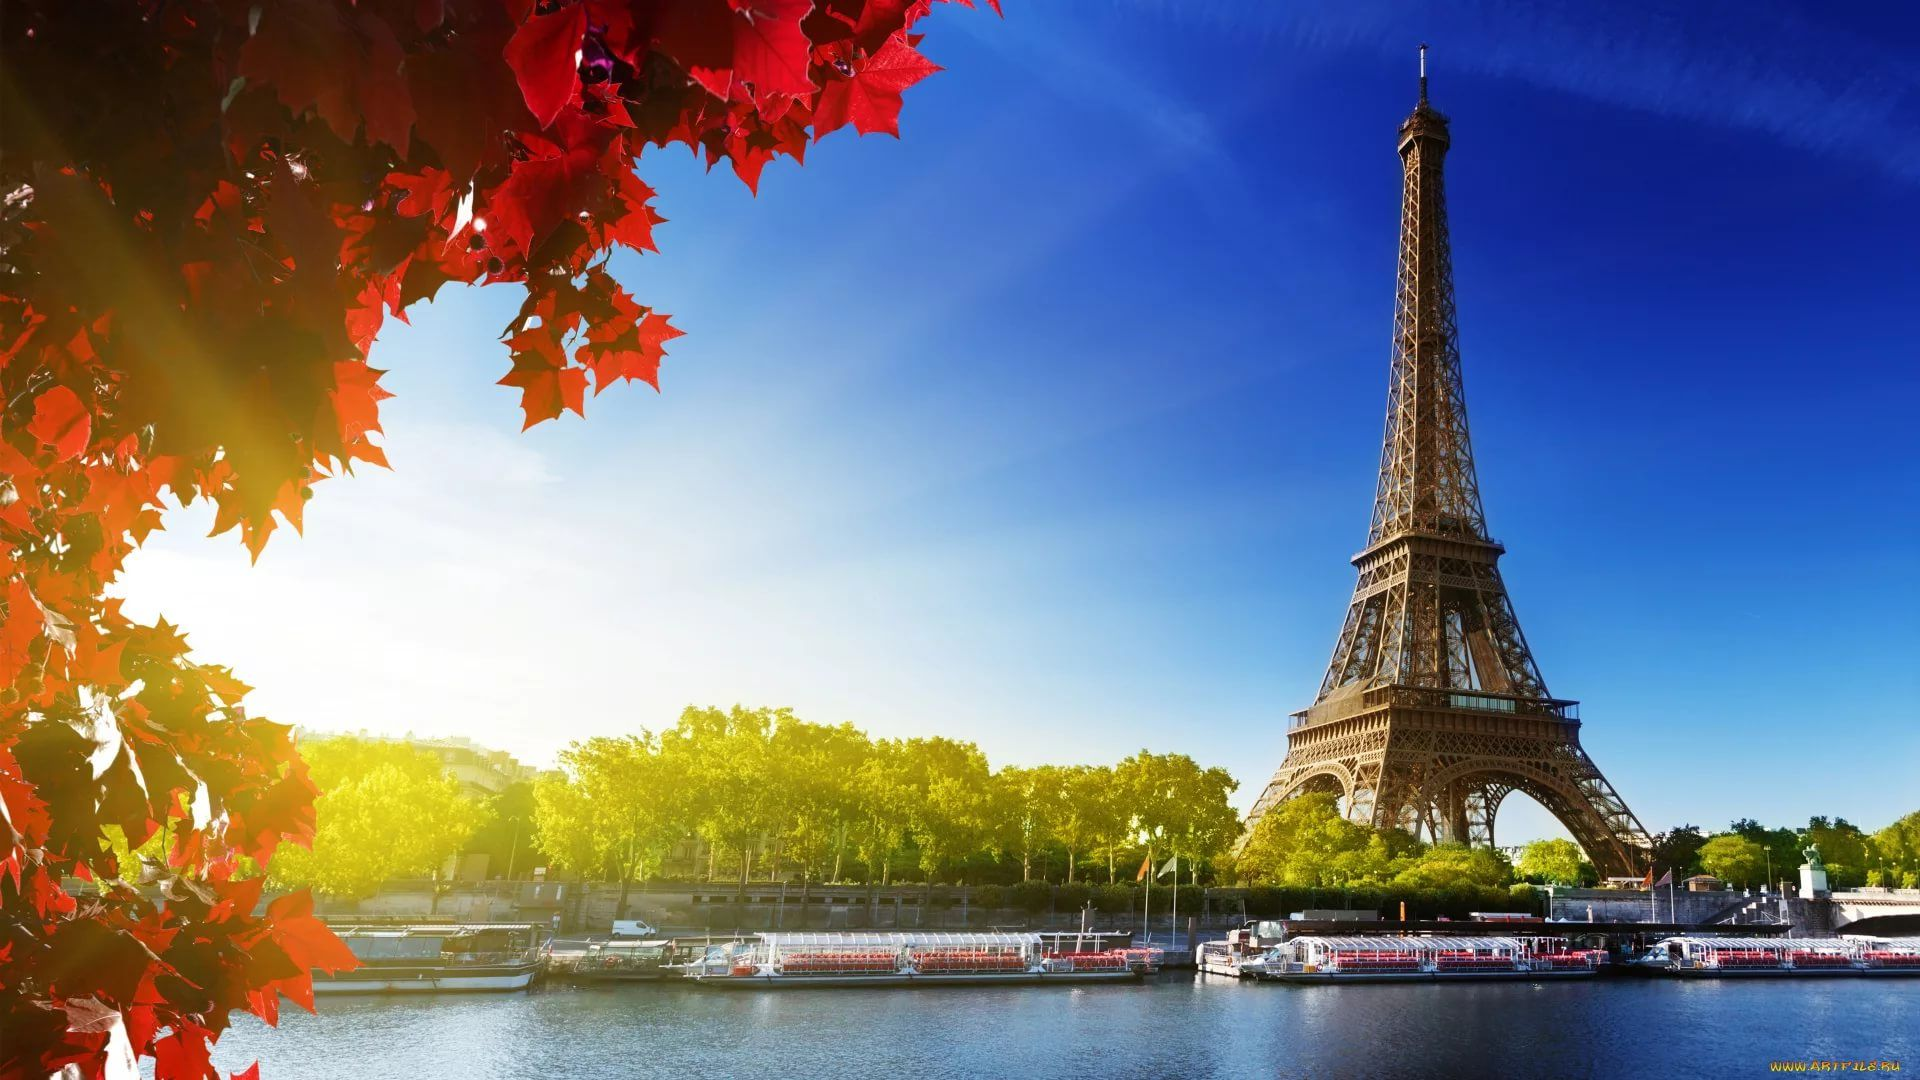 Cute Paris vertical wallpaper hd